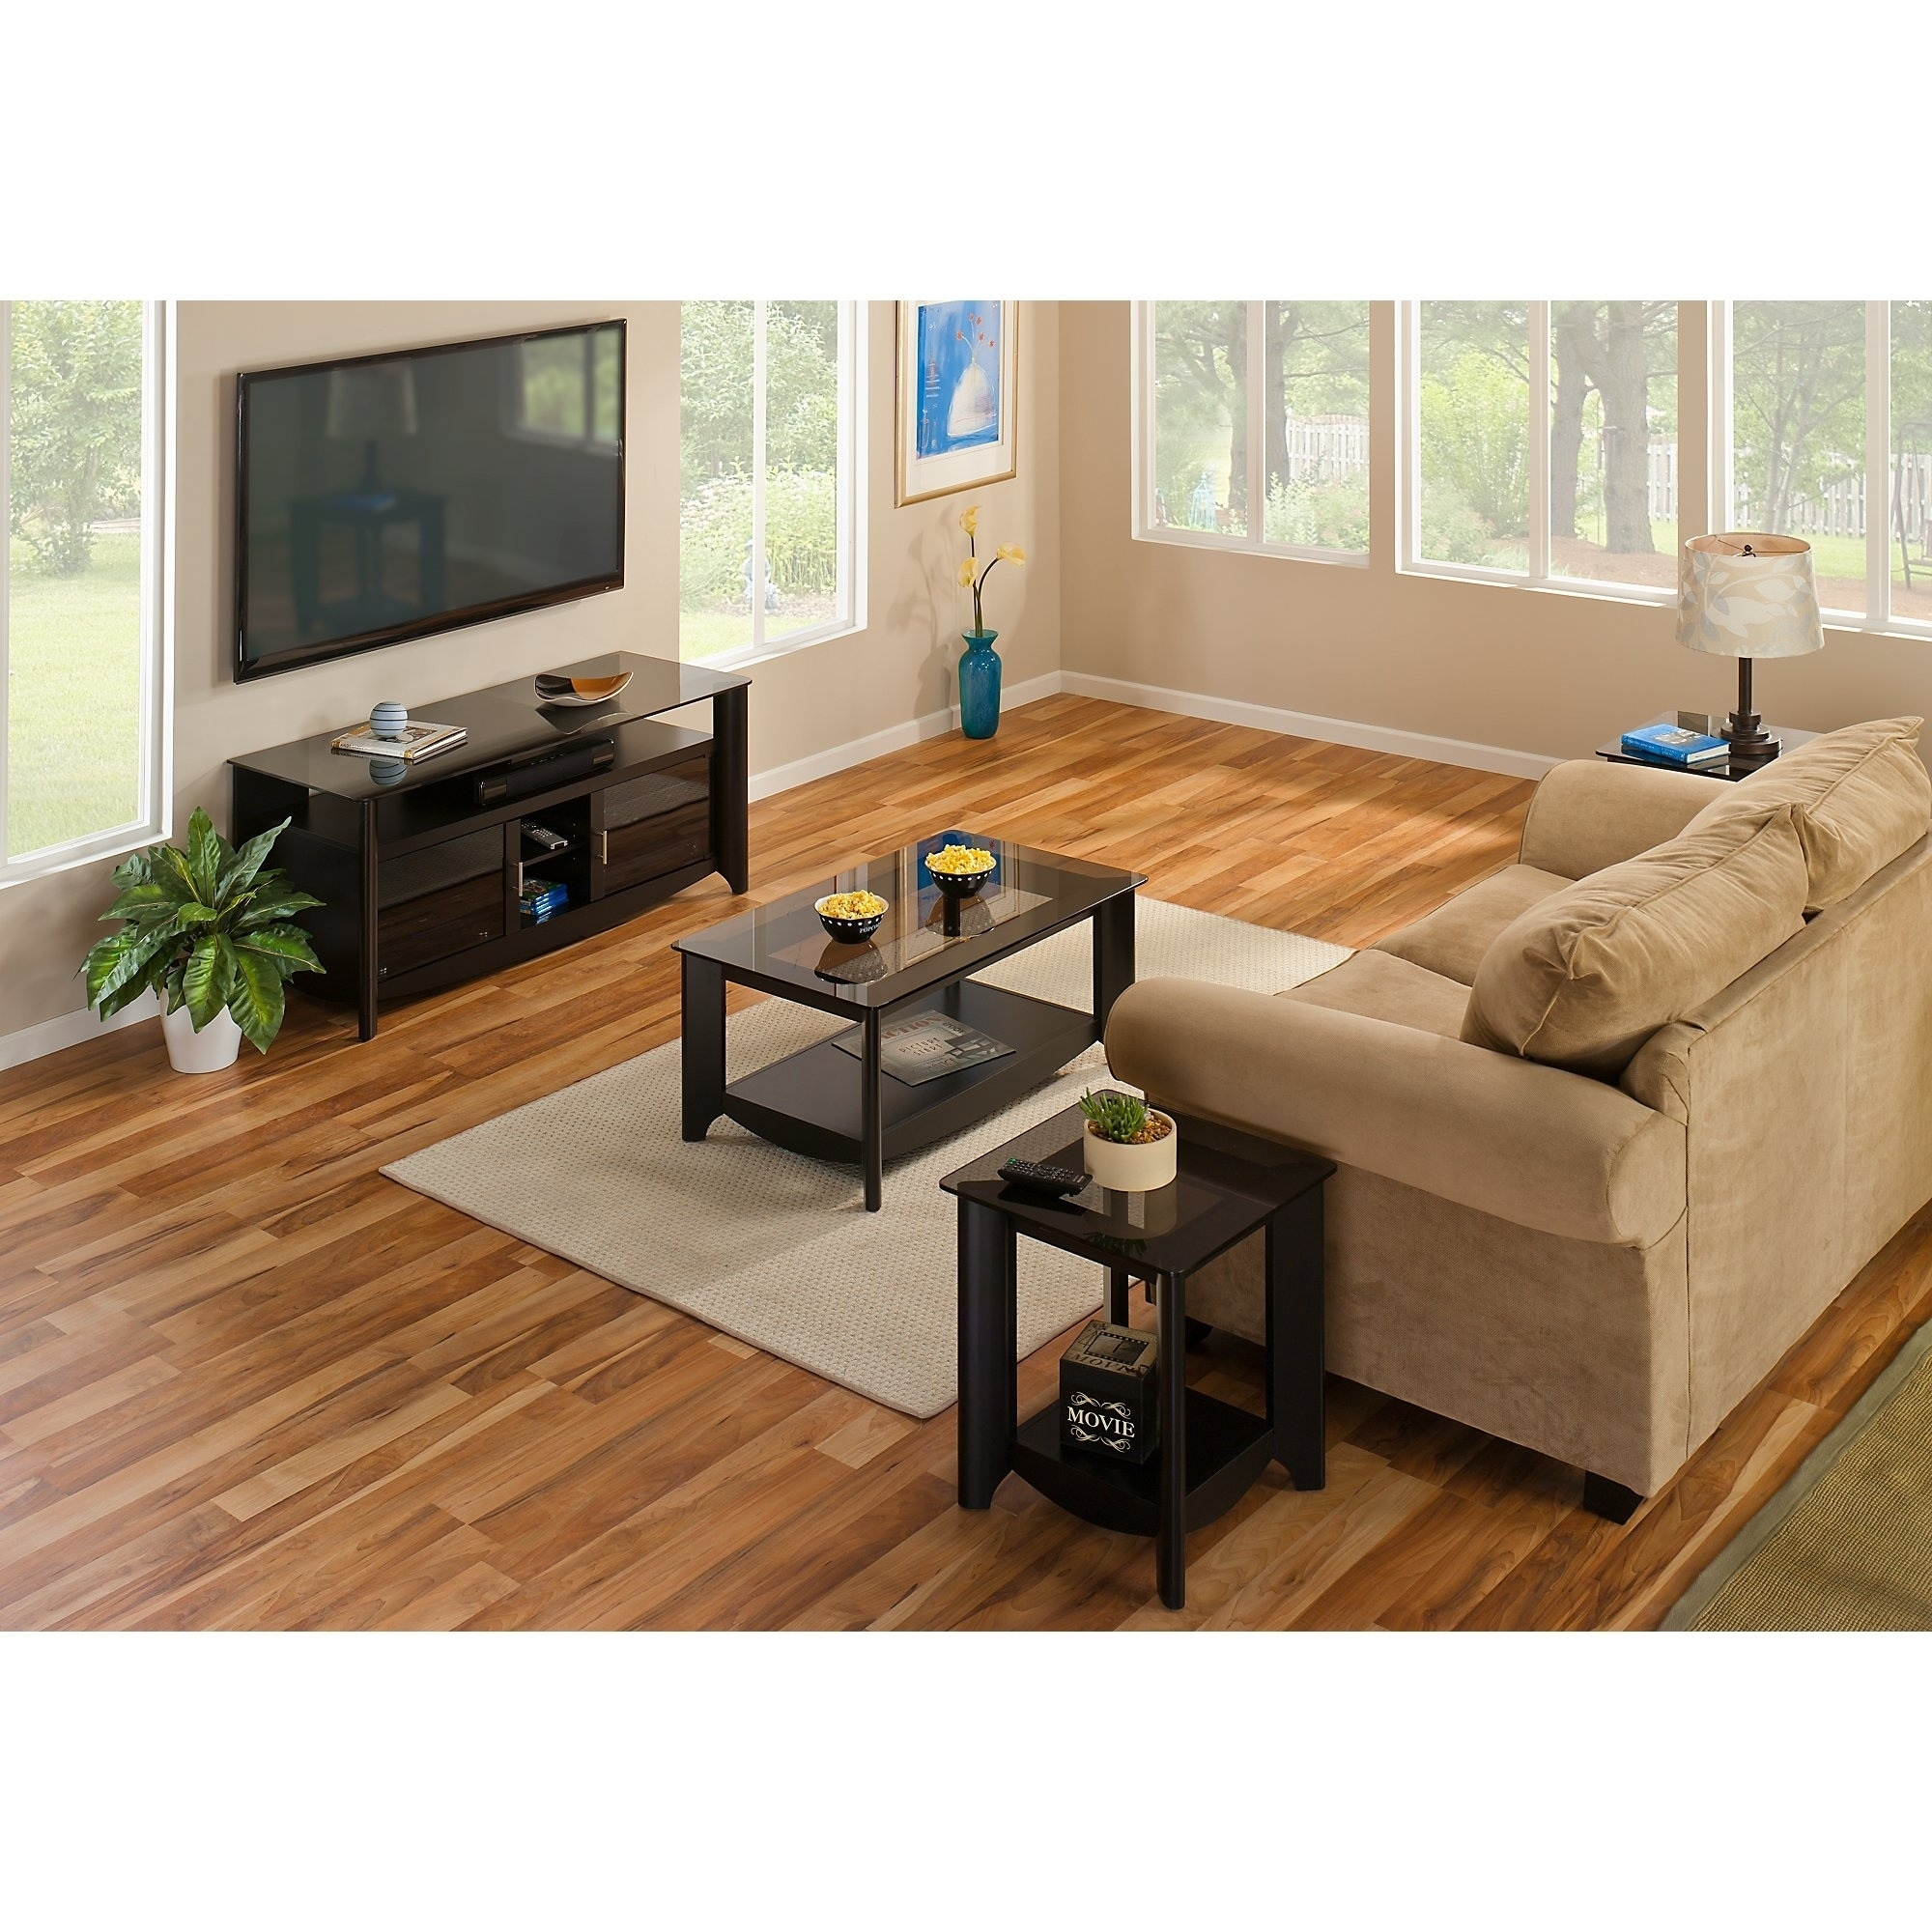 Aero 56 Inch TV Stand and Coffee Table with End Tables in Black